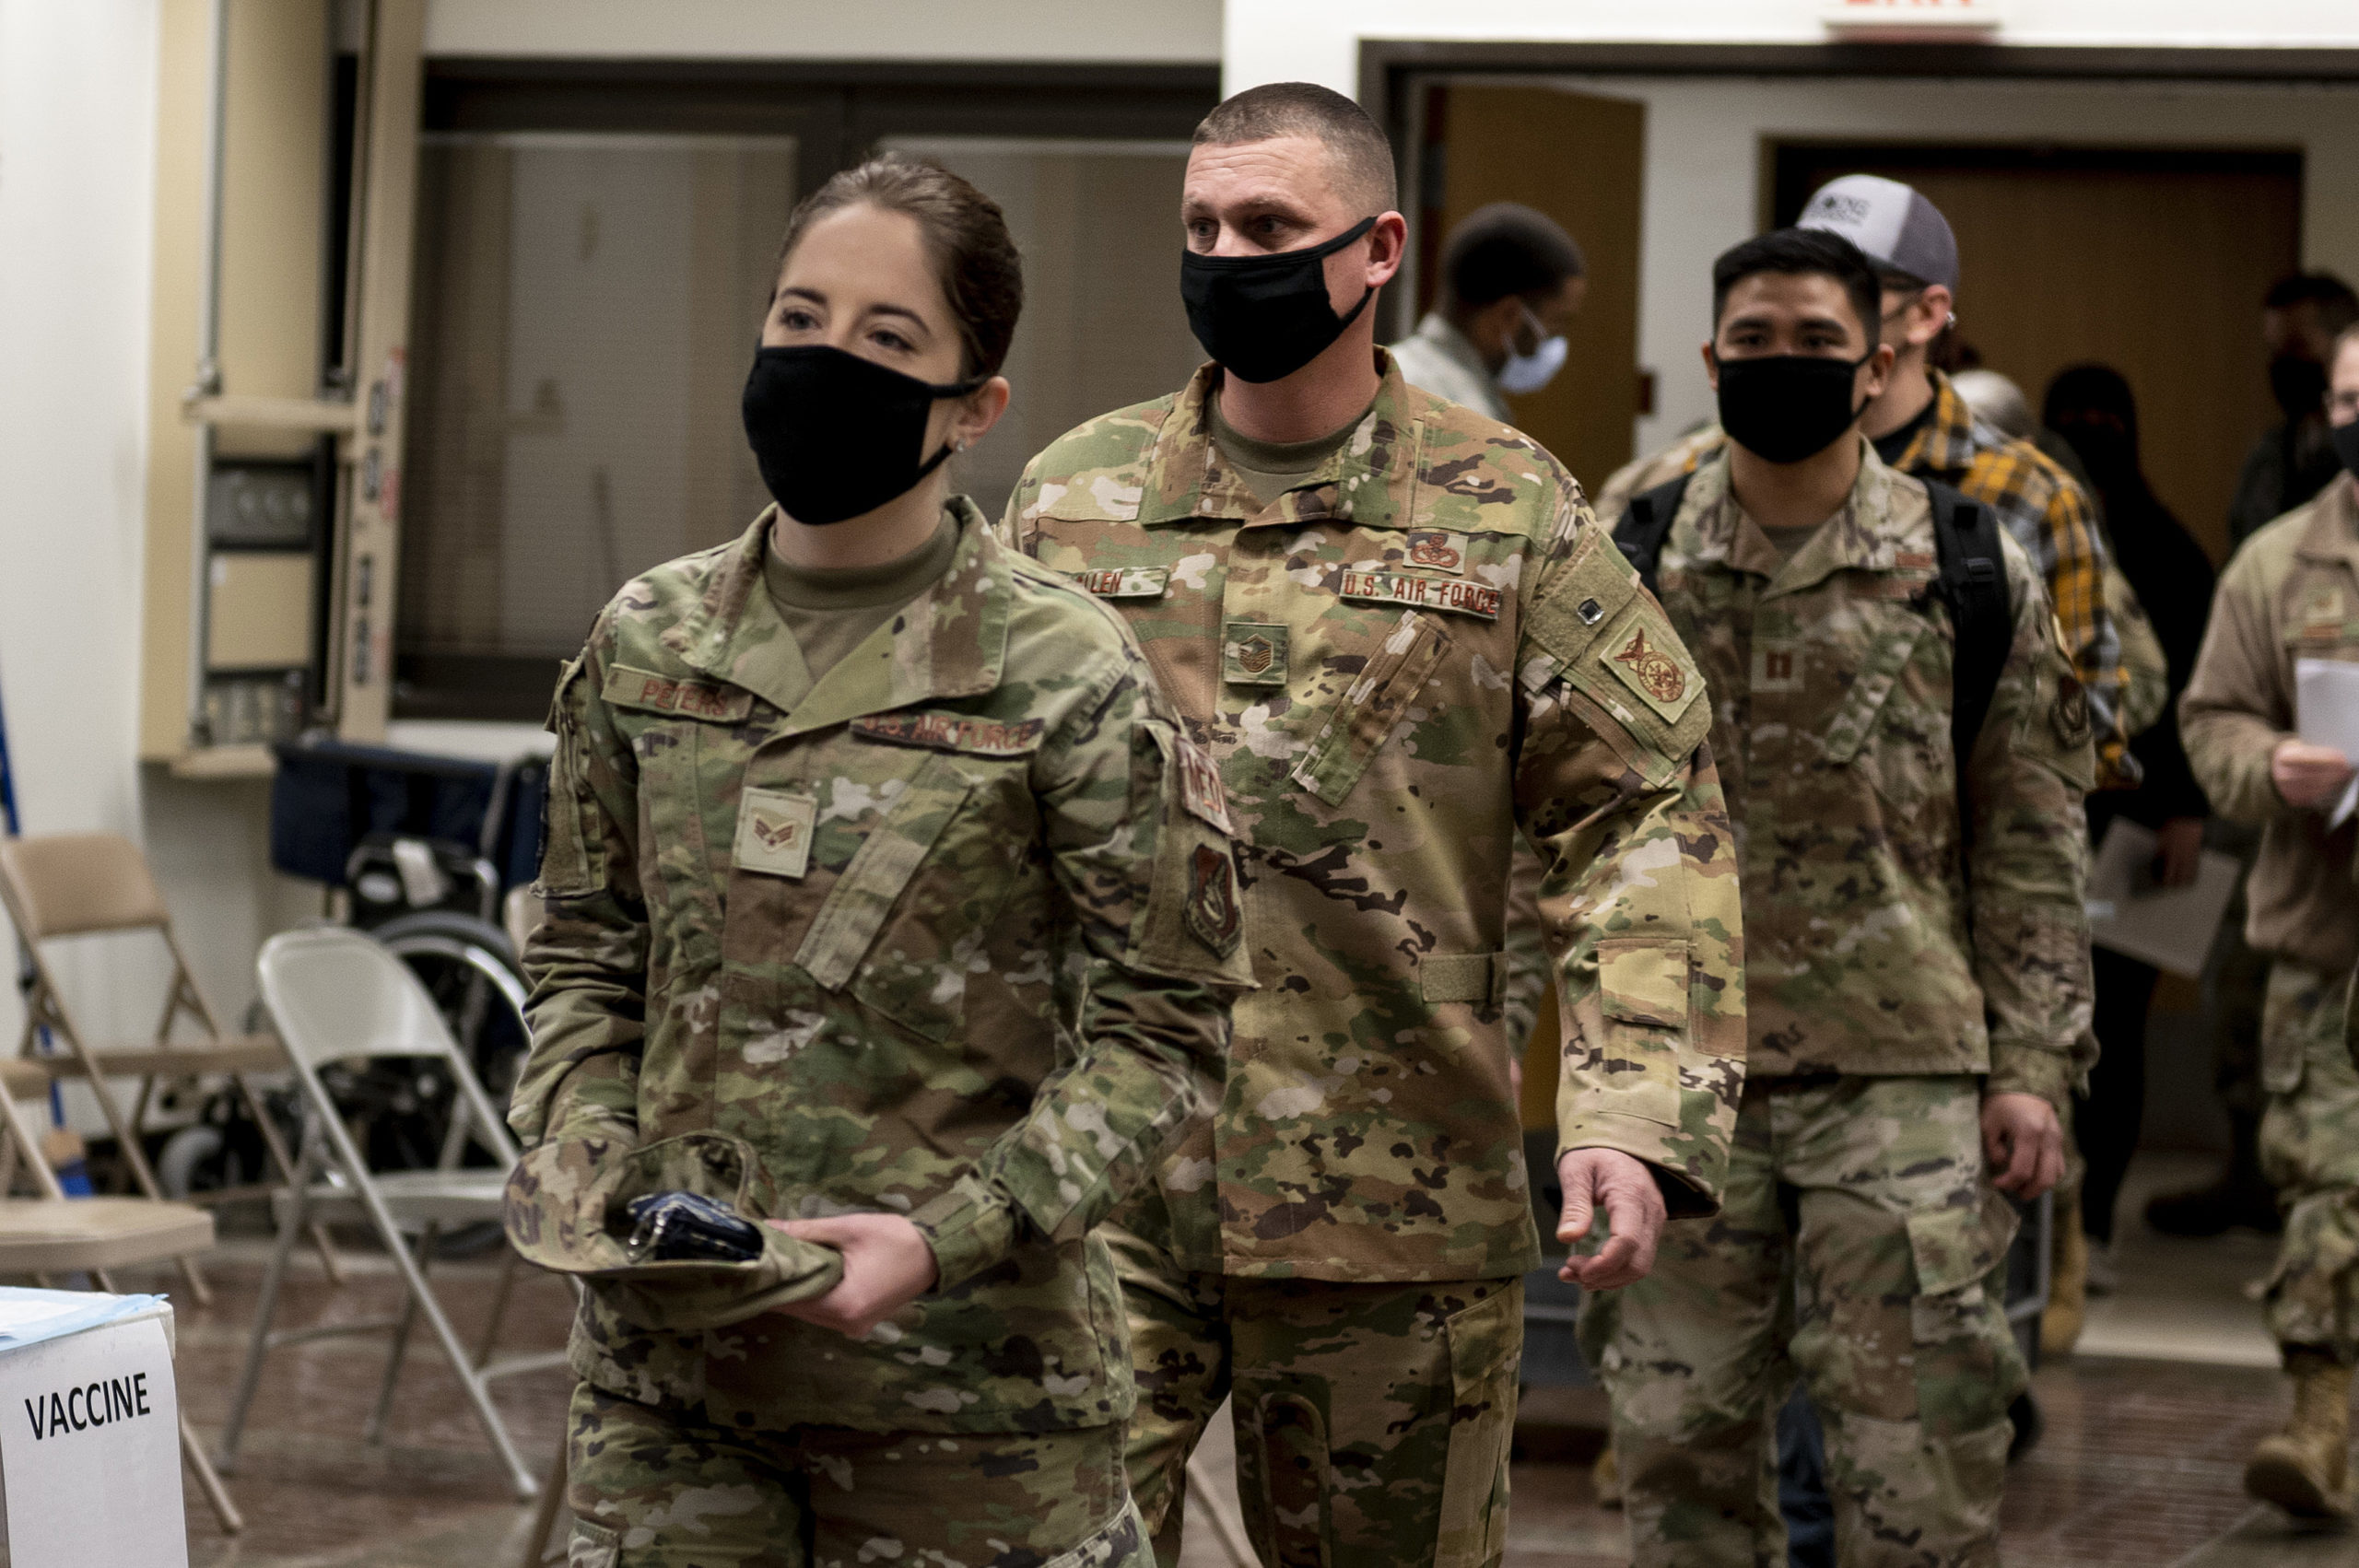 In this handout image provided by United States Forces Korea, Members of U.S. Air Force prepare to receive the first round of the Moderna COVID-19 vaccine at Osan Air Base on December 29, 2020 in Pyeongtaek, South Korea. (Photo by United States Forces Korea via Getty Images)